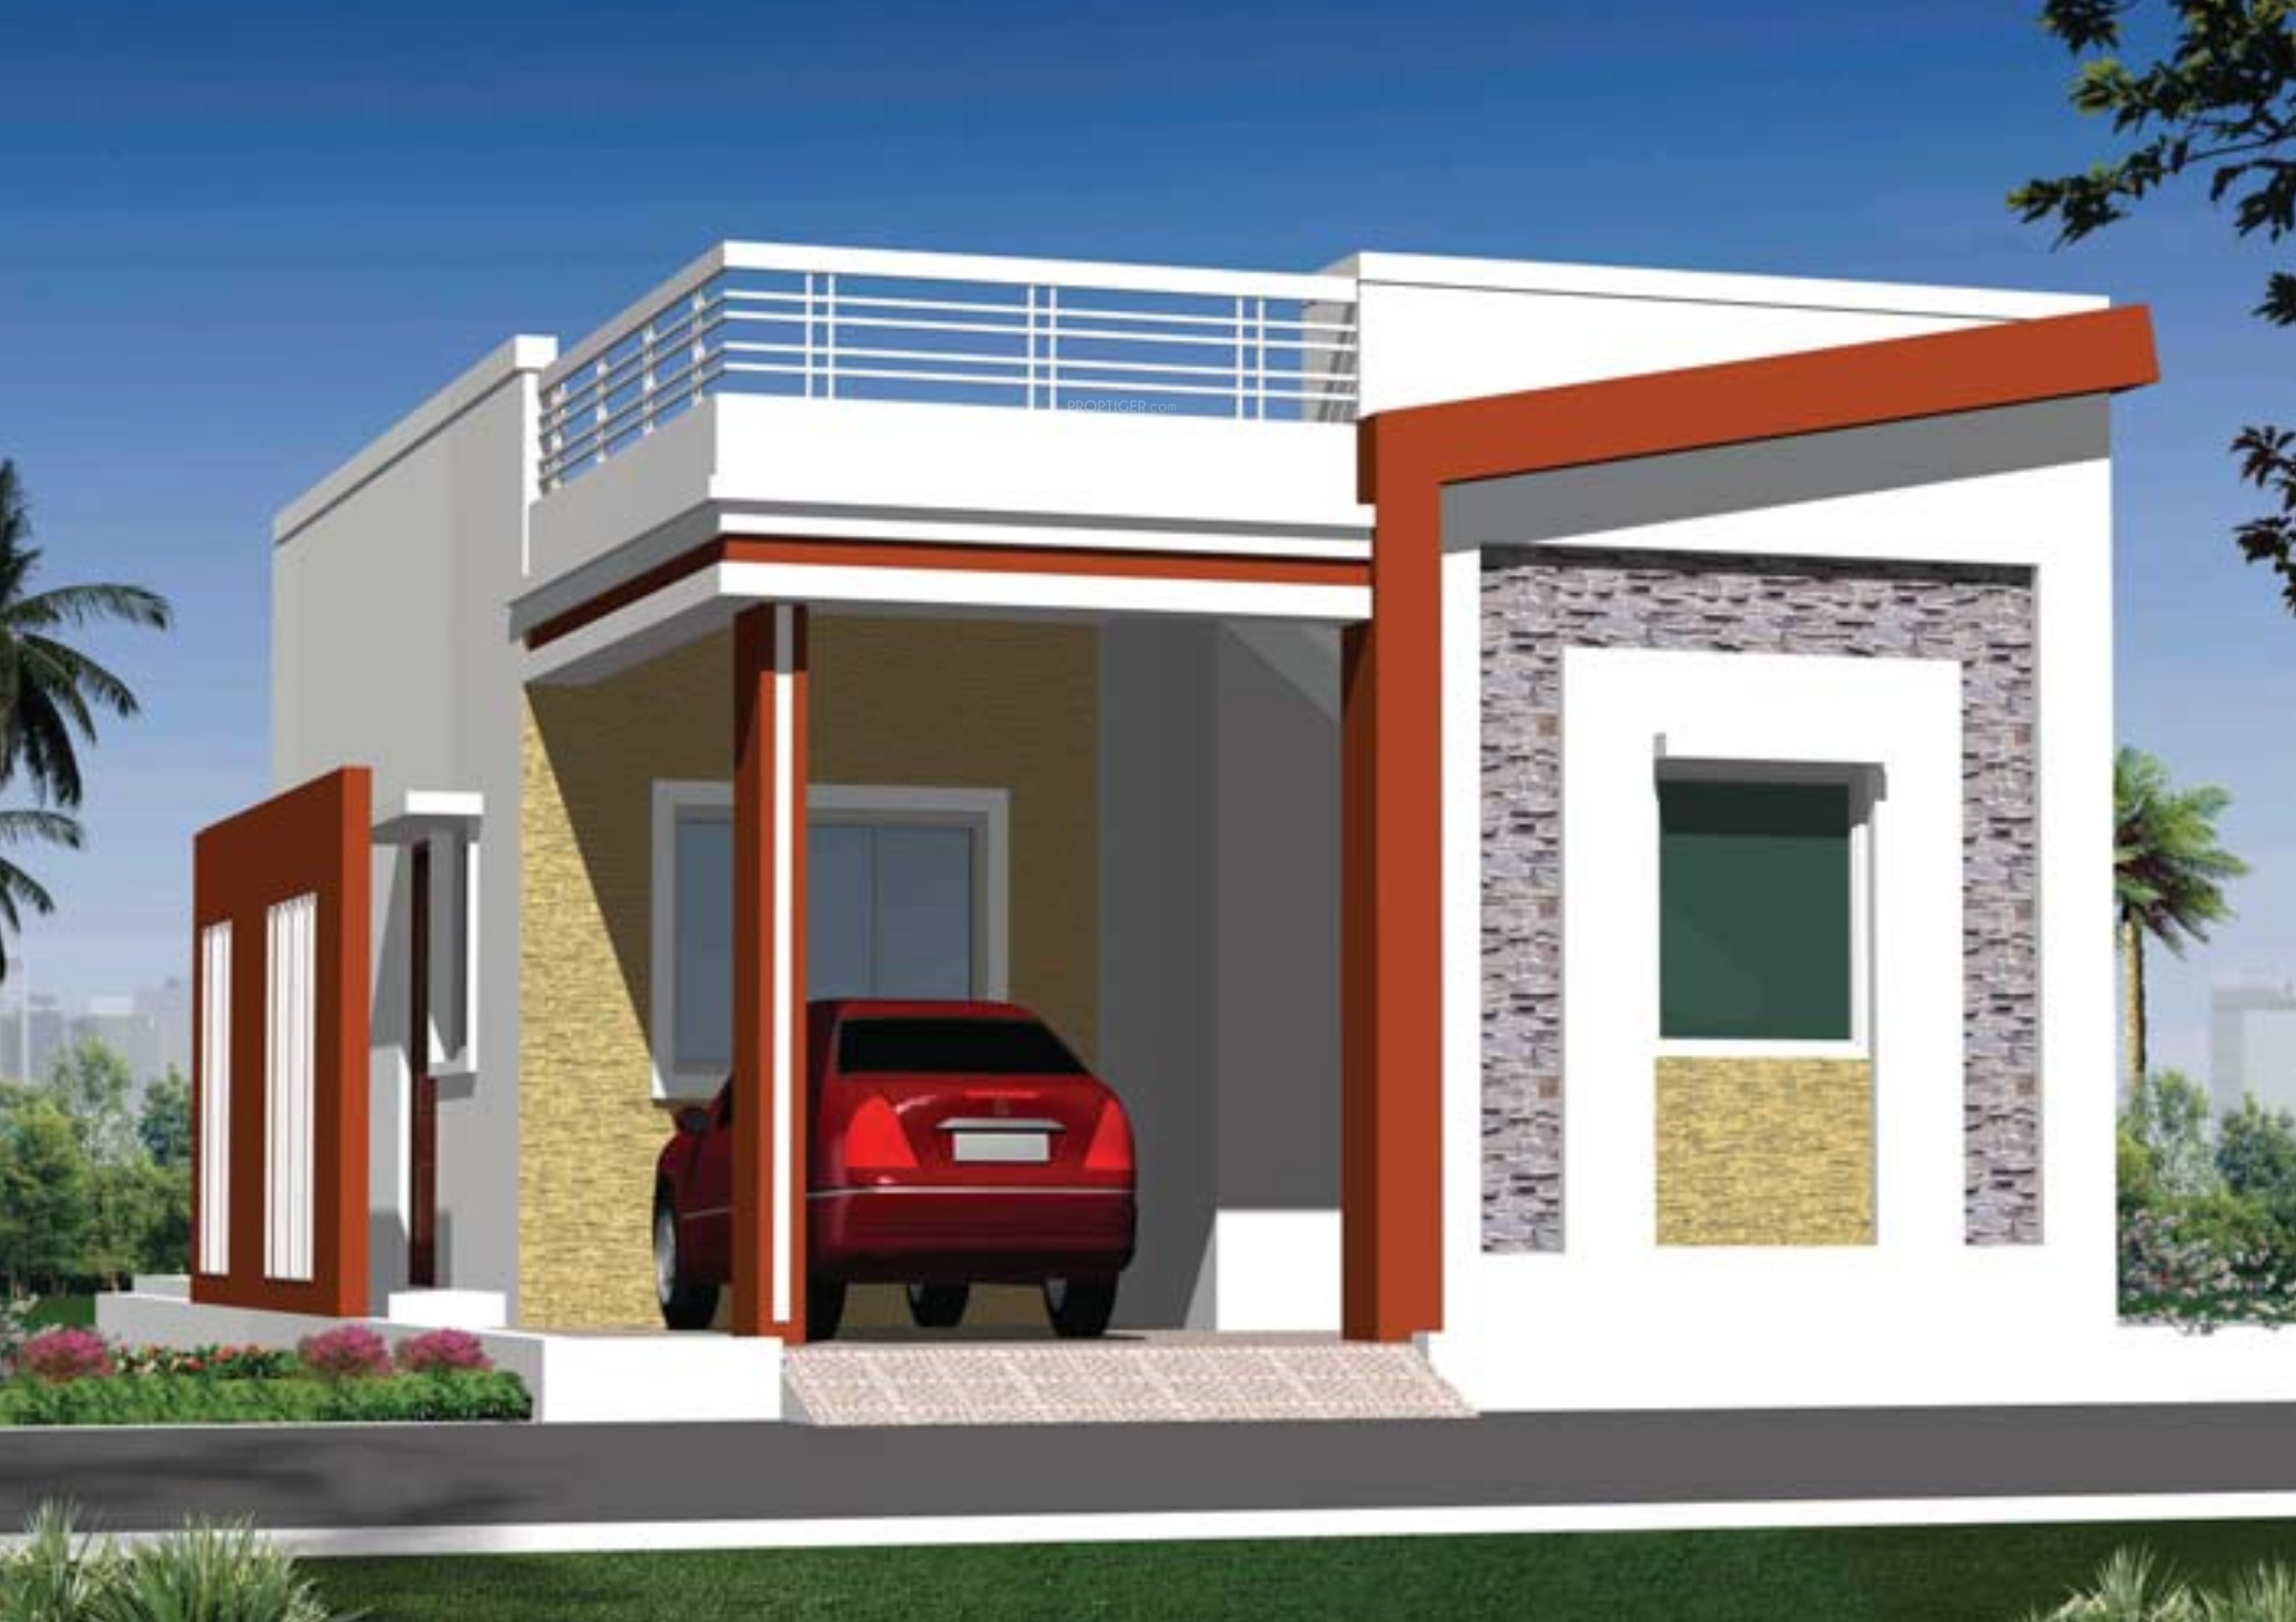 1062 Sq Ft 2 BHK Floor Plan Image Sai Srushti Sangamam